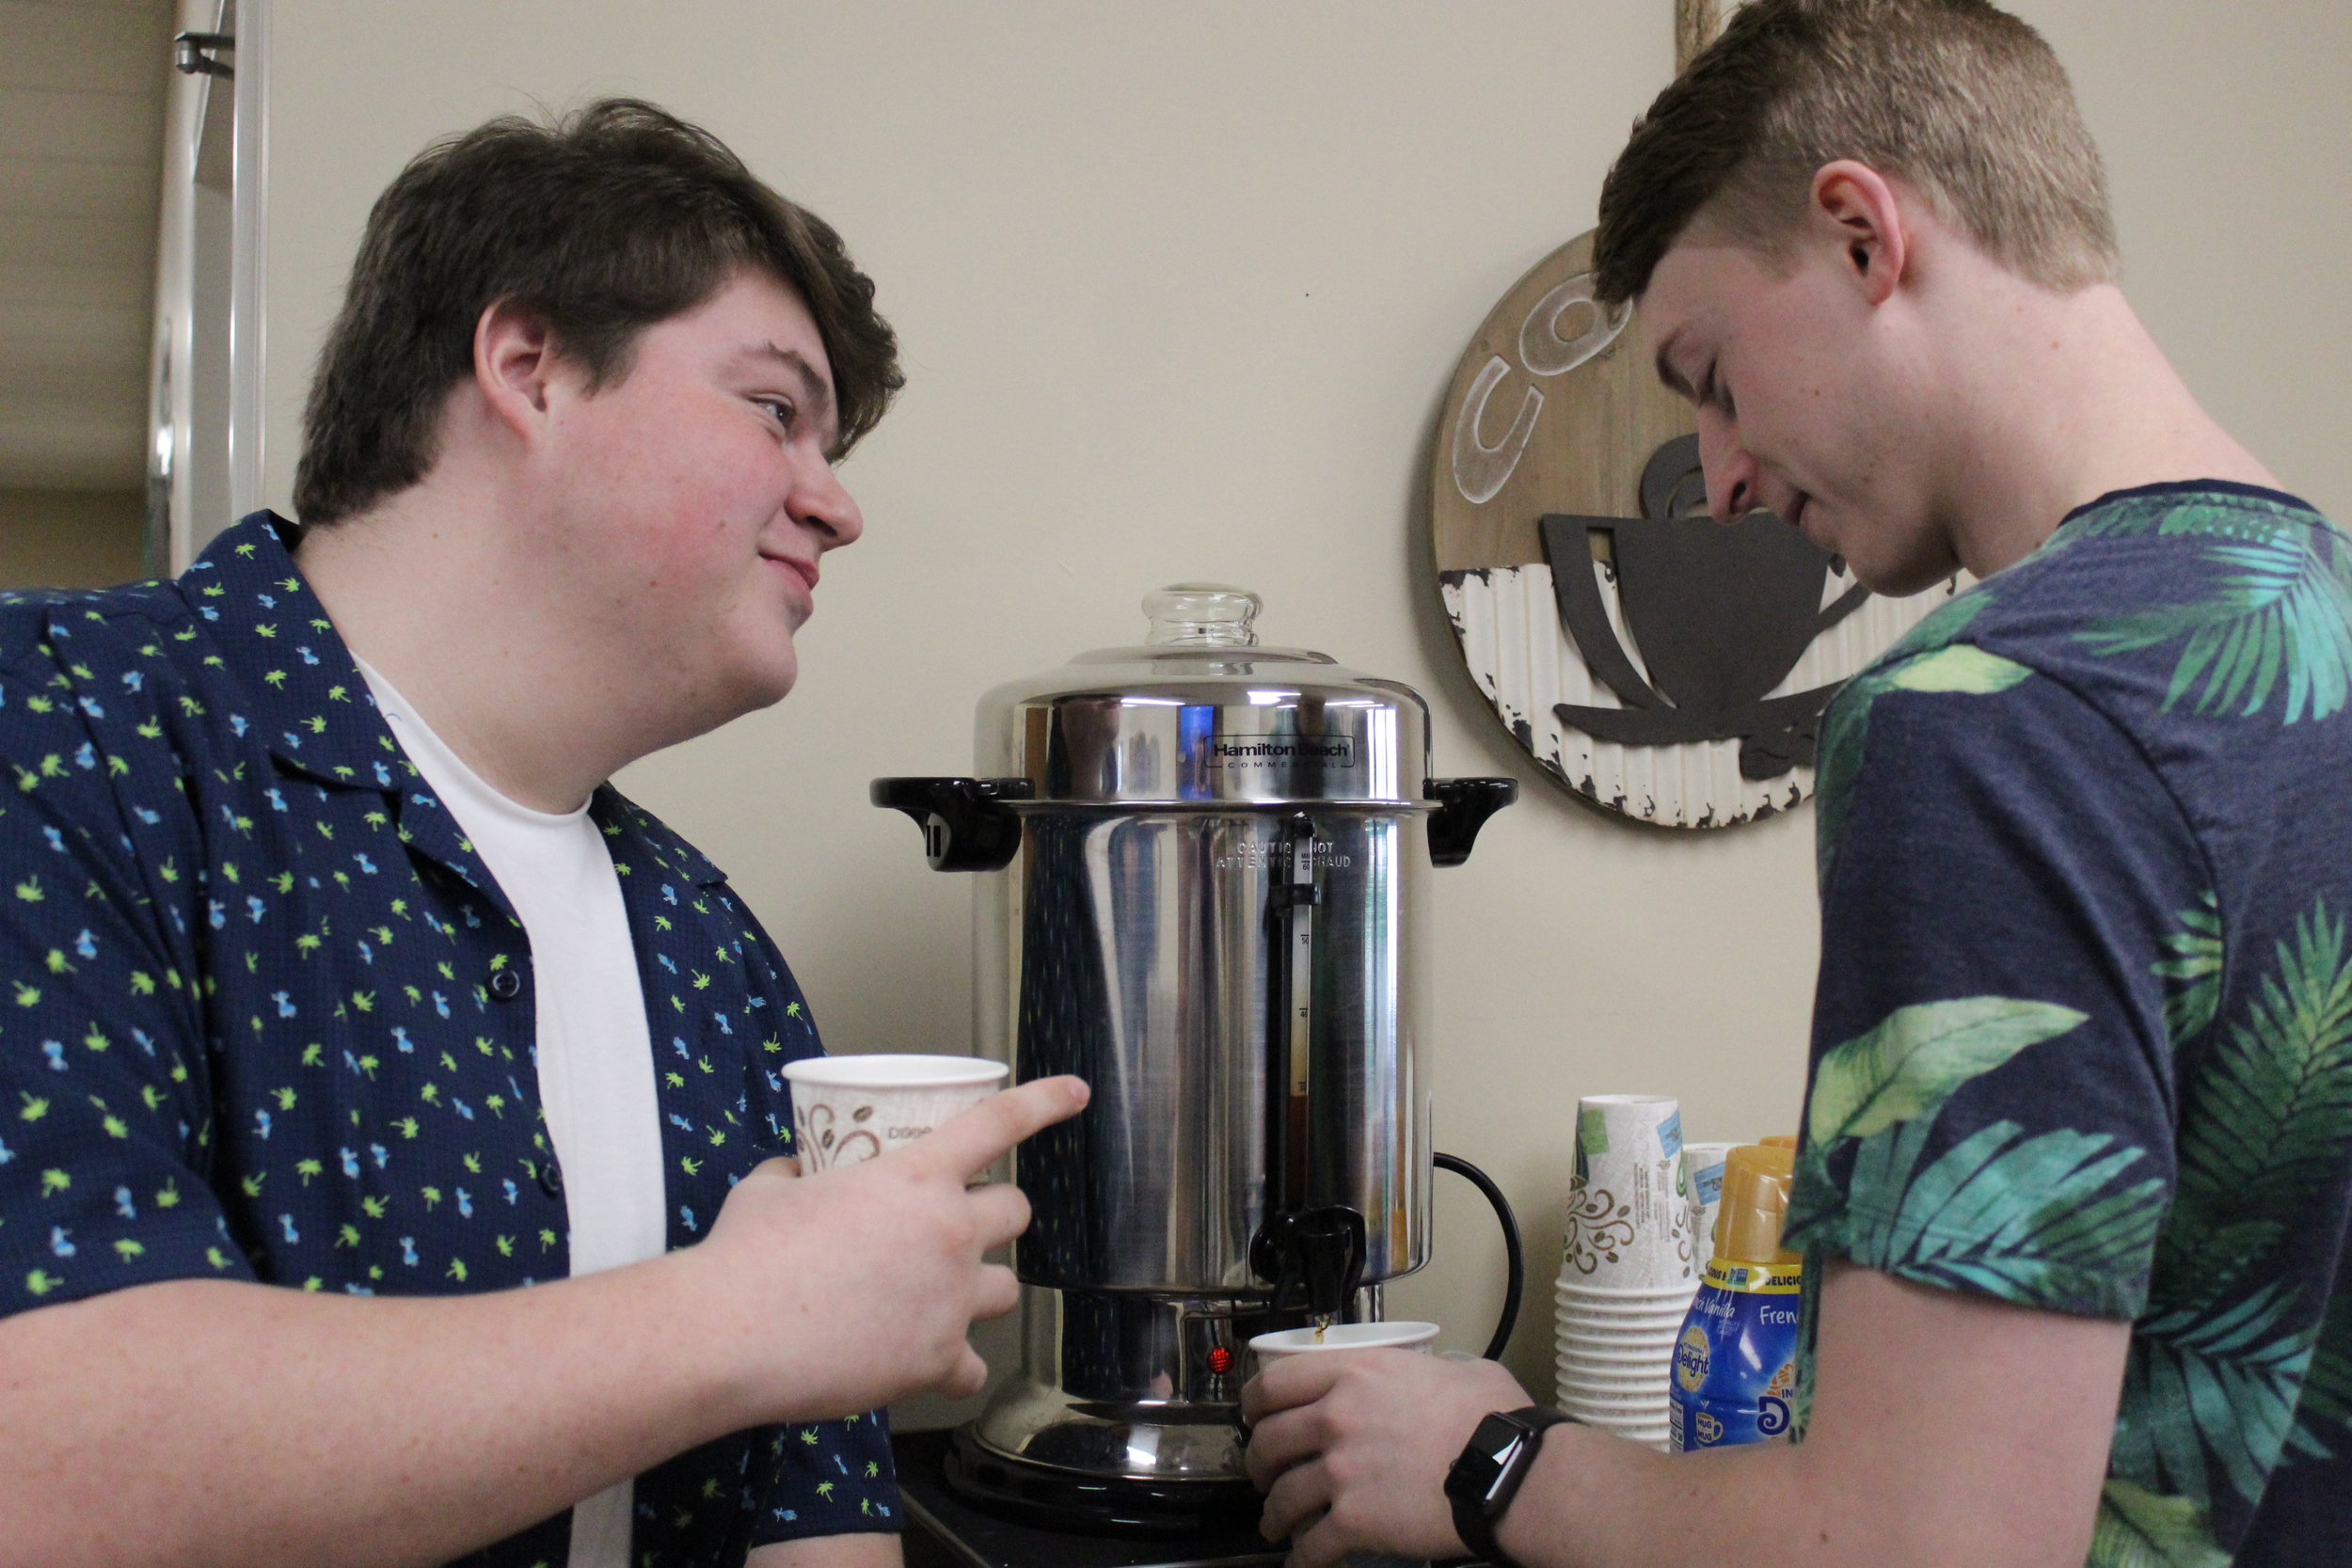 Pictured here is Jameson Evatt and Nathan Ingle fellowshipping over a cup of coffee before Sunday morning service.